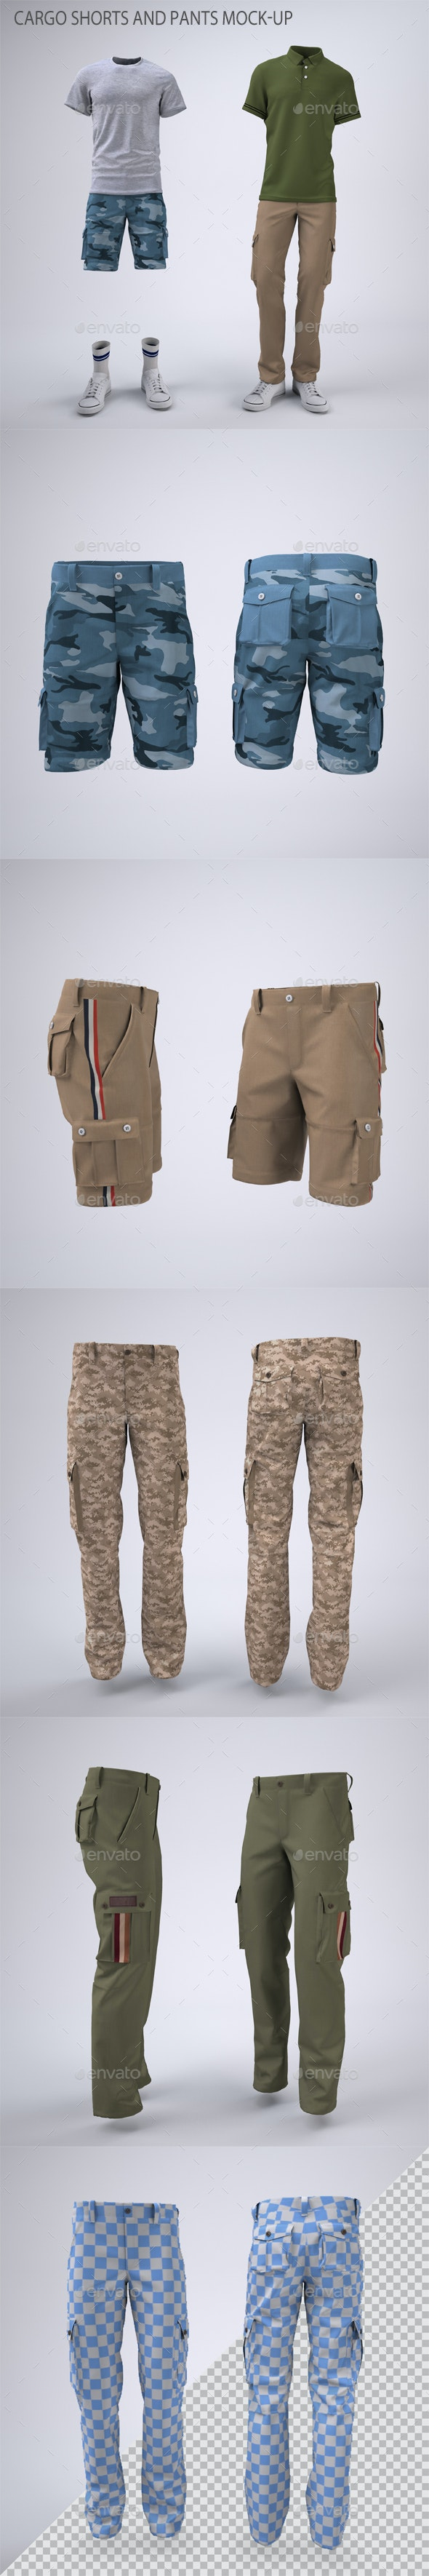 Cargo Shorts and Cargo Pants Mock-Up - Apparel Product Mock-Ups